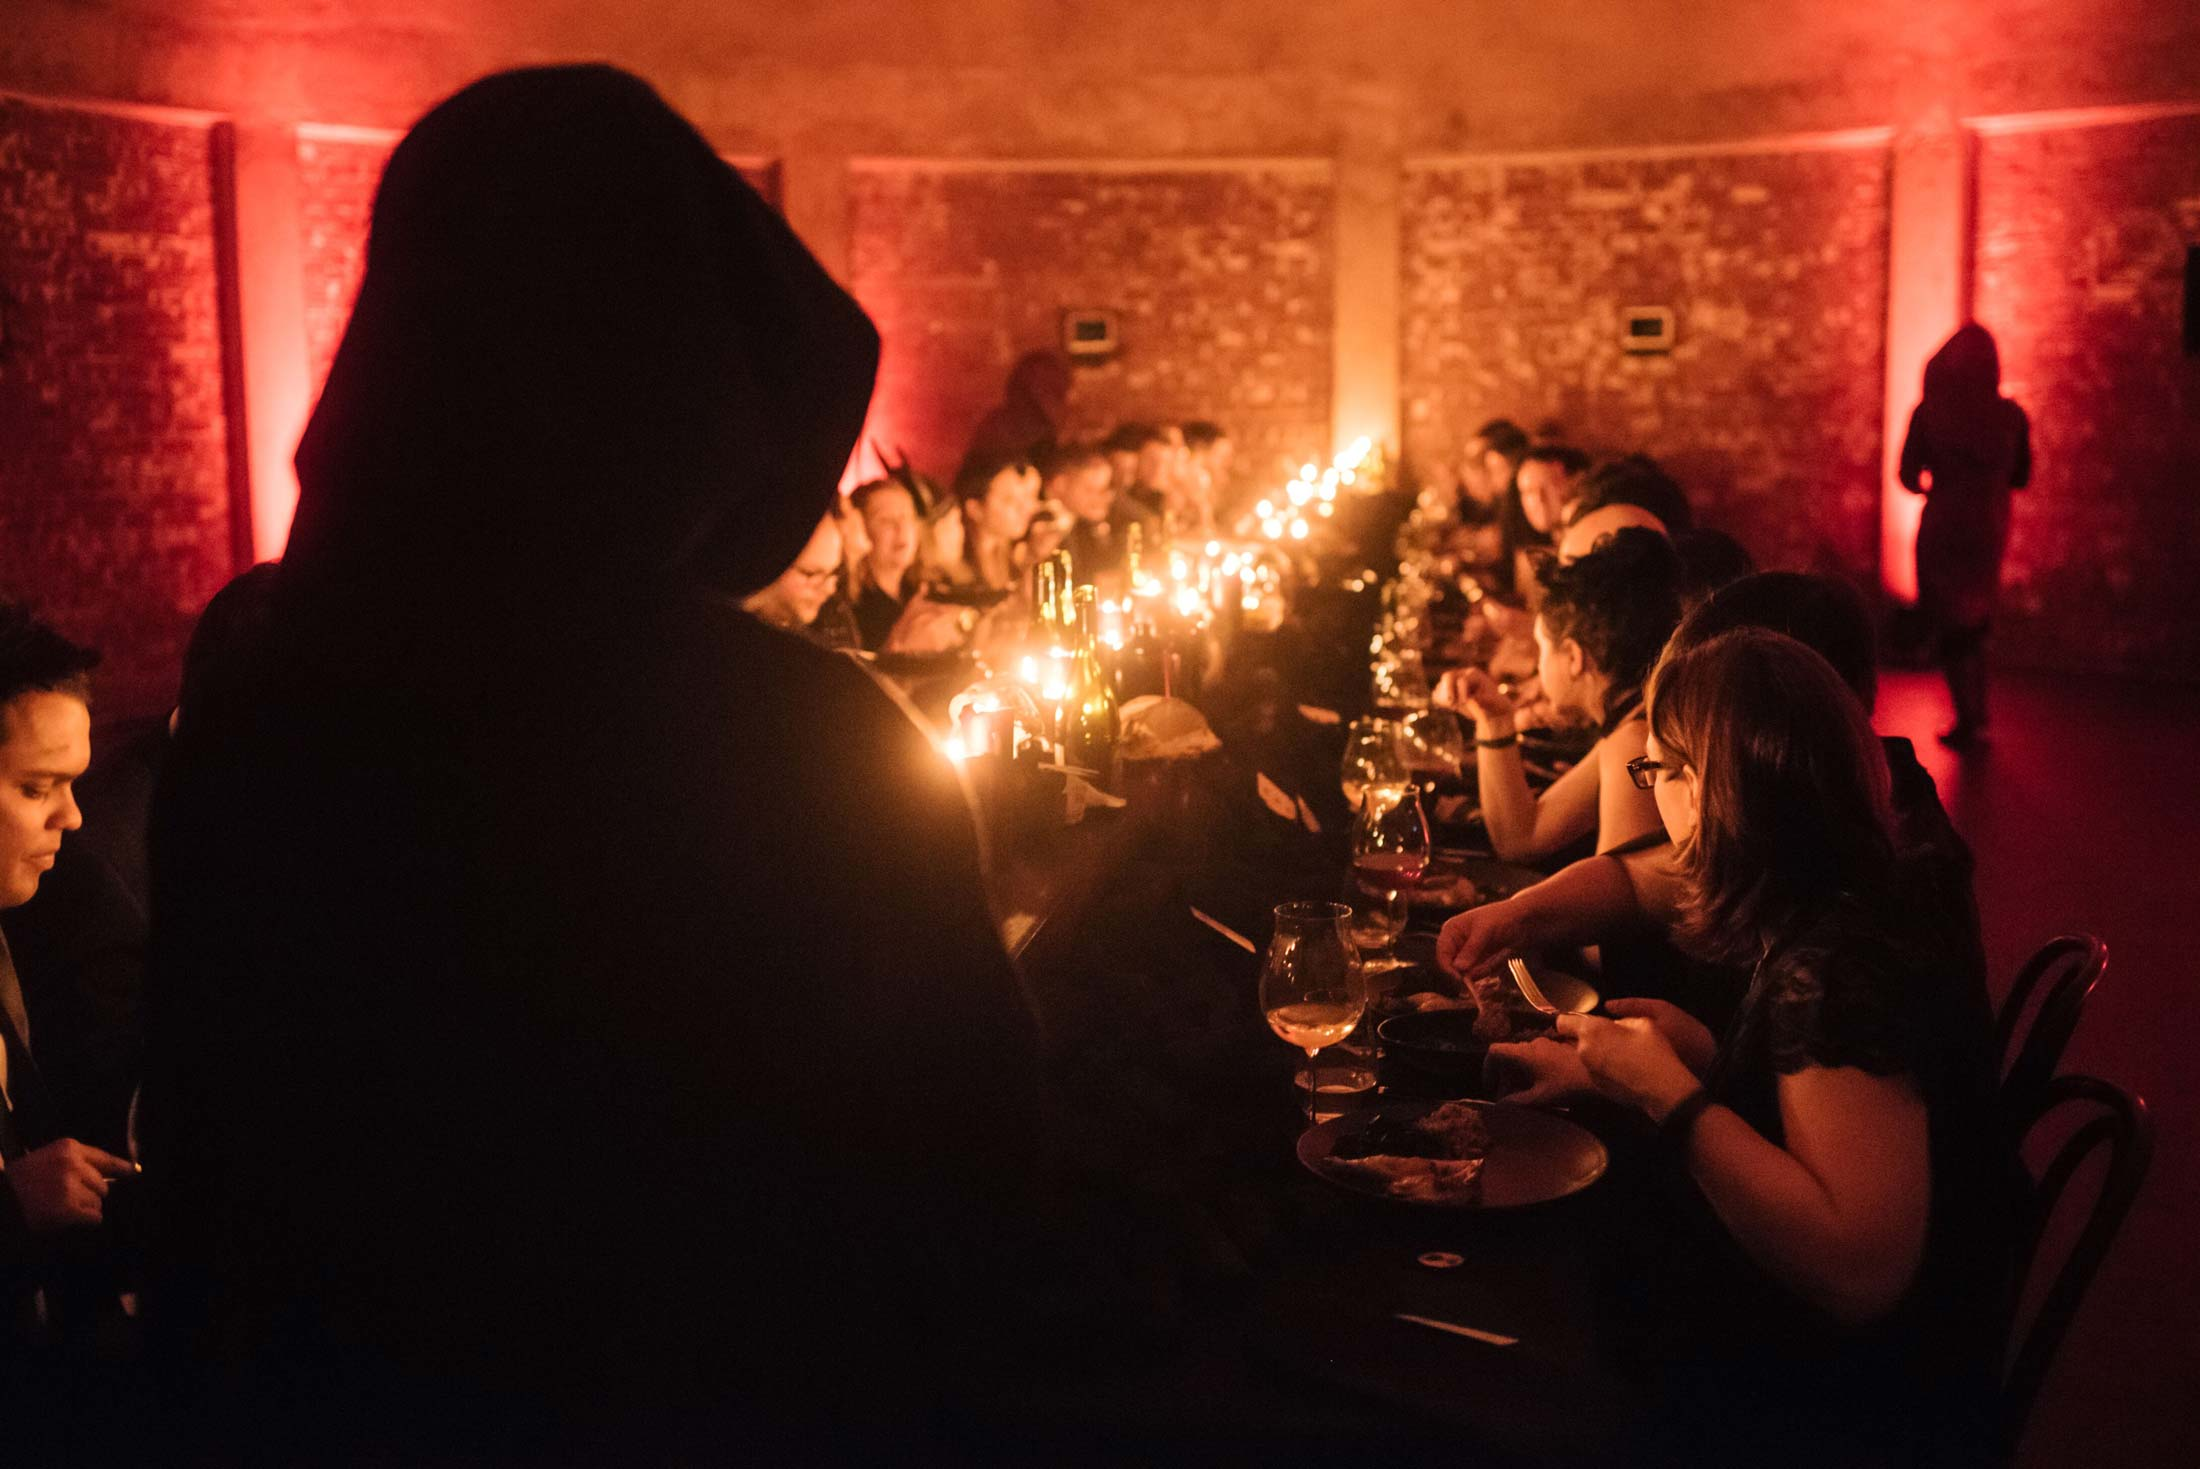 Feast of the Deceiver